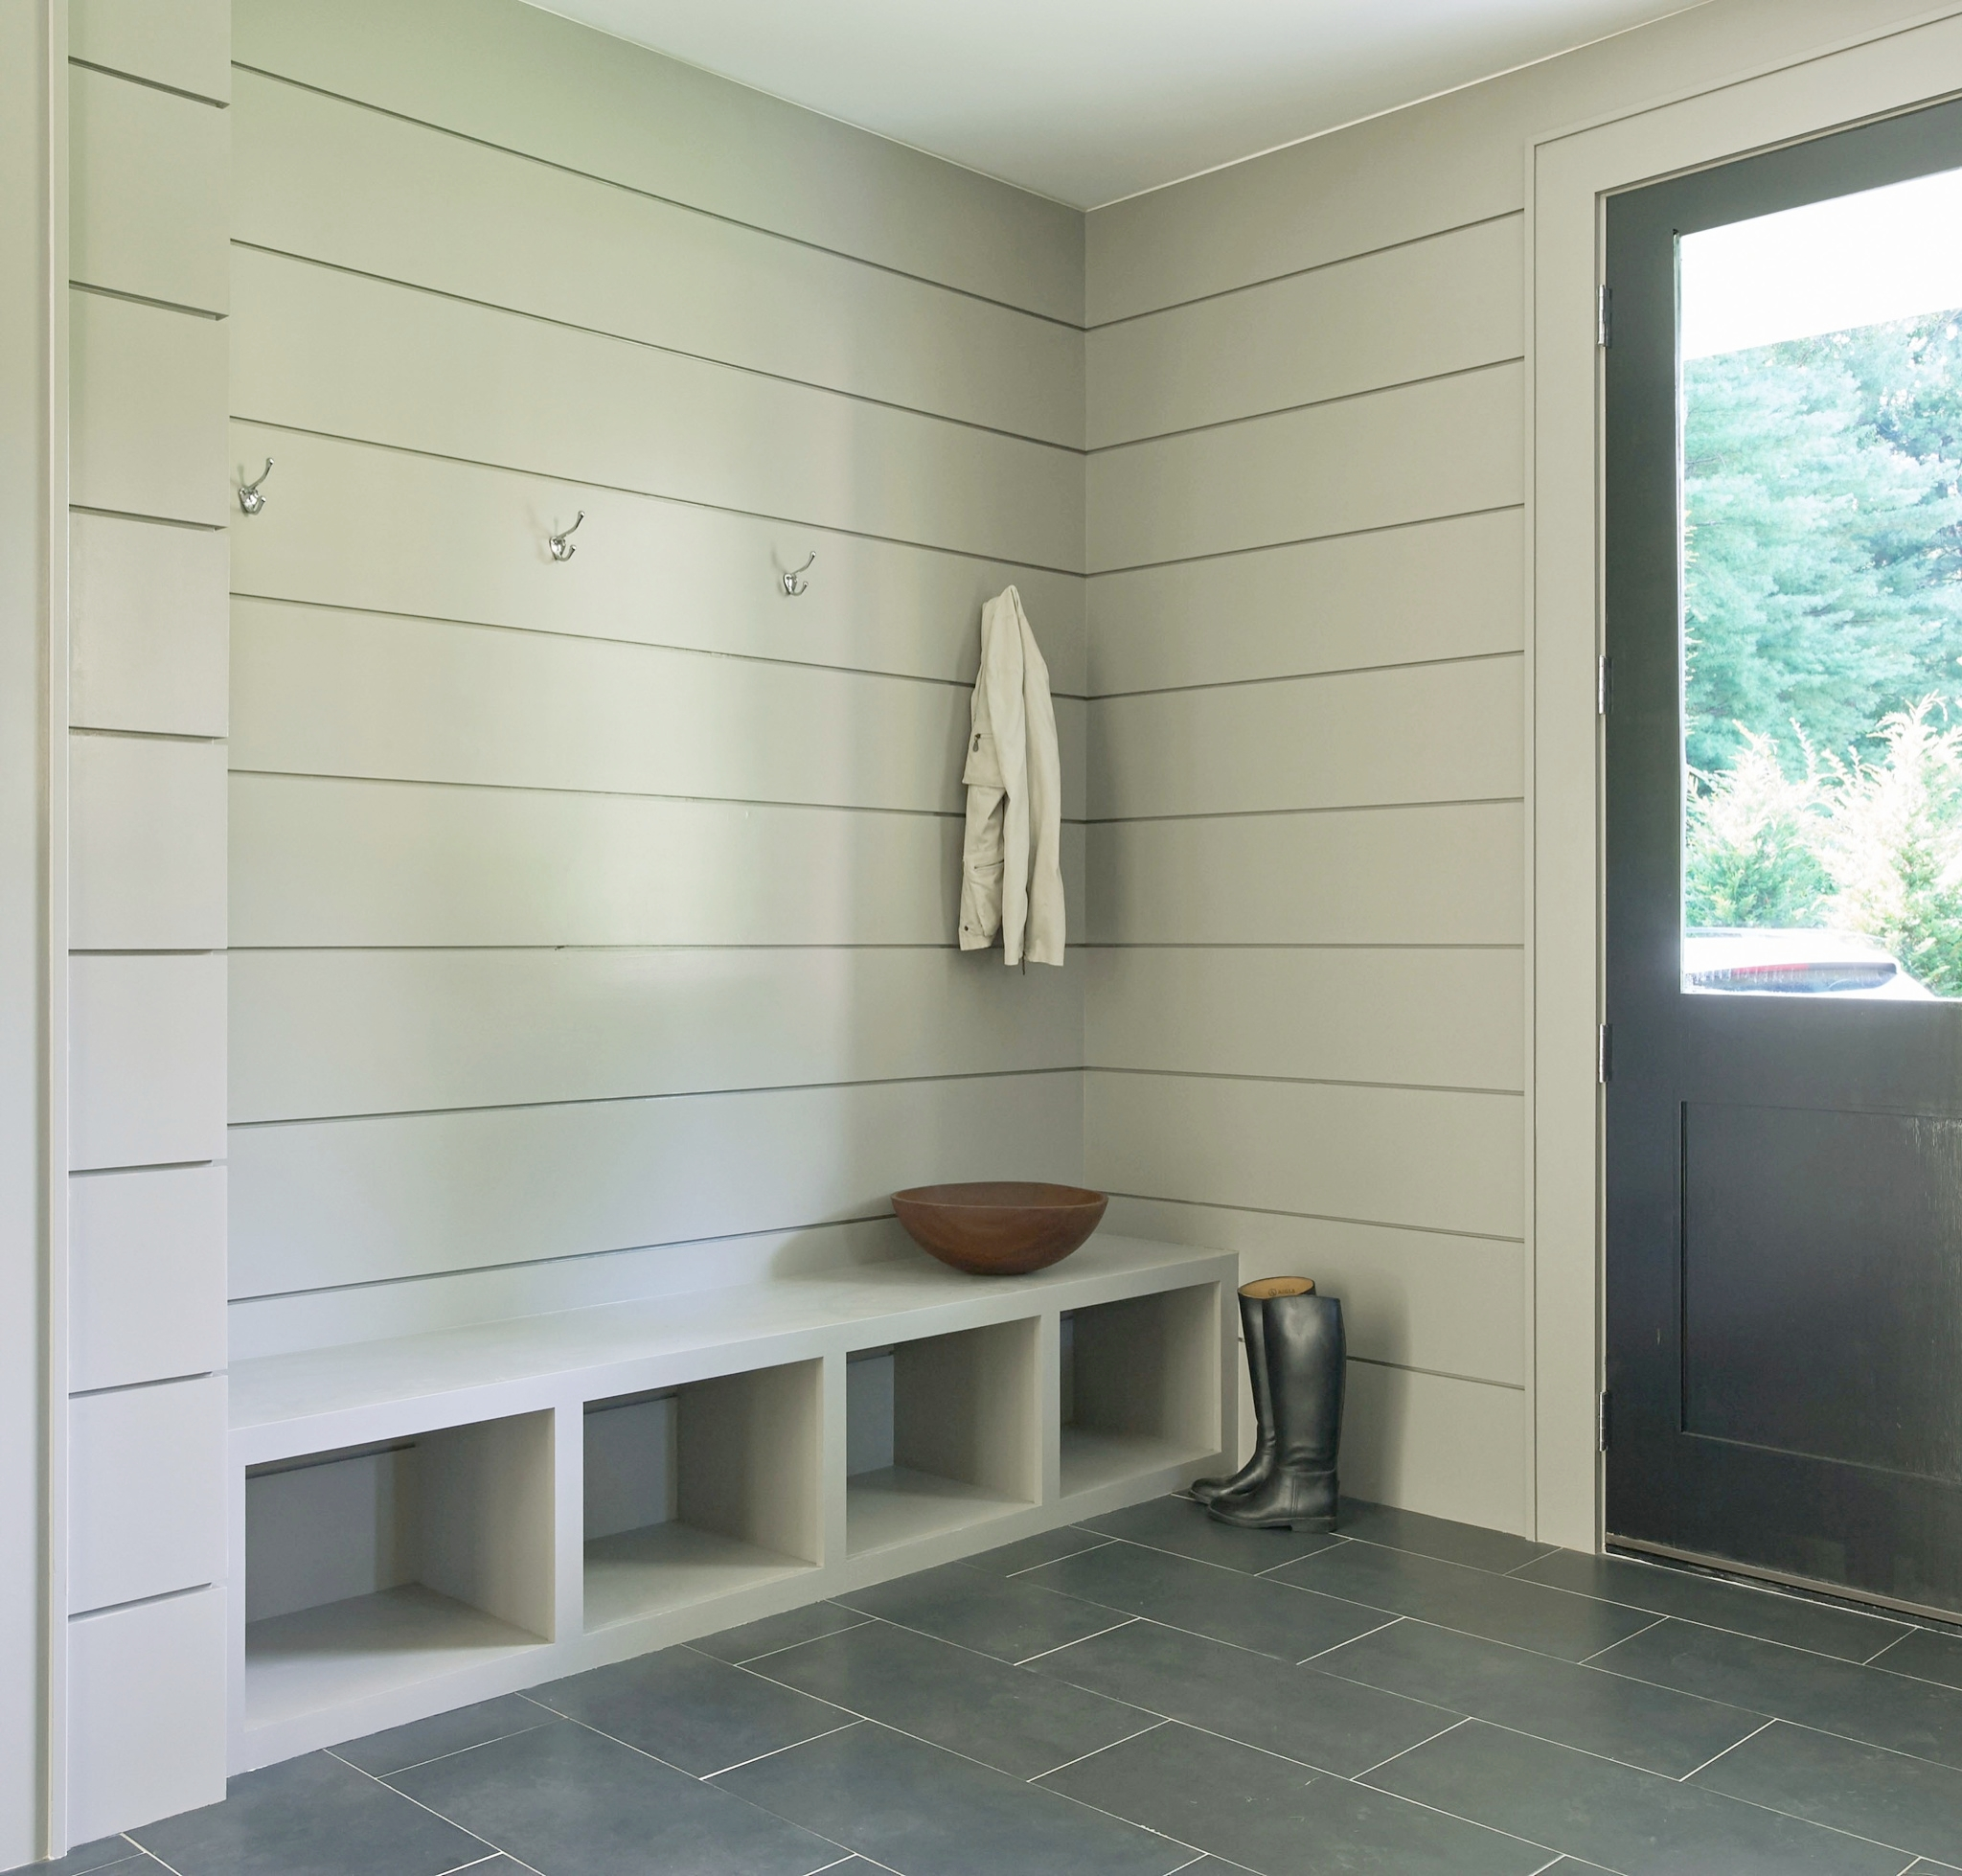 Adams+Farm+Mudroom.jpg